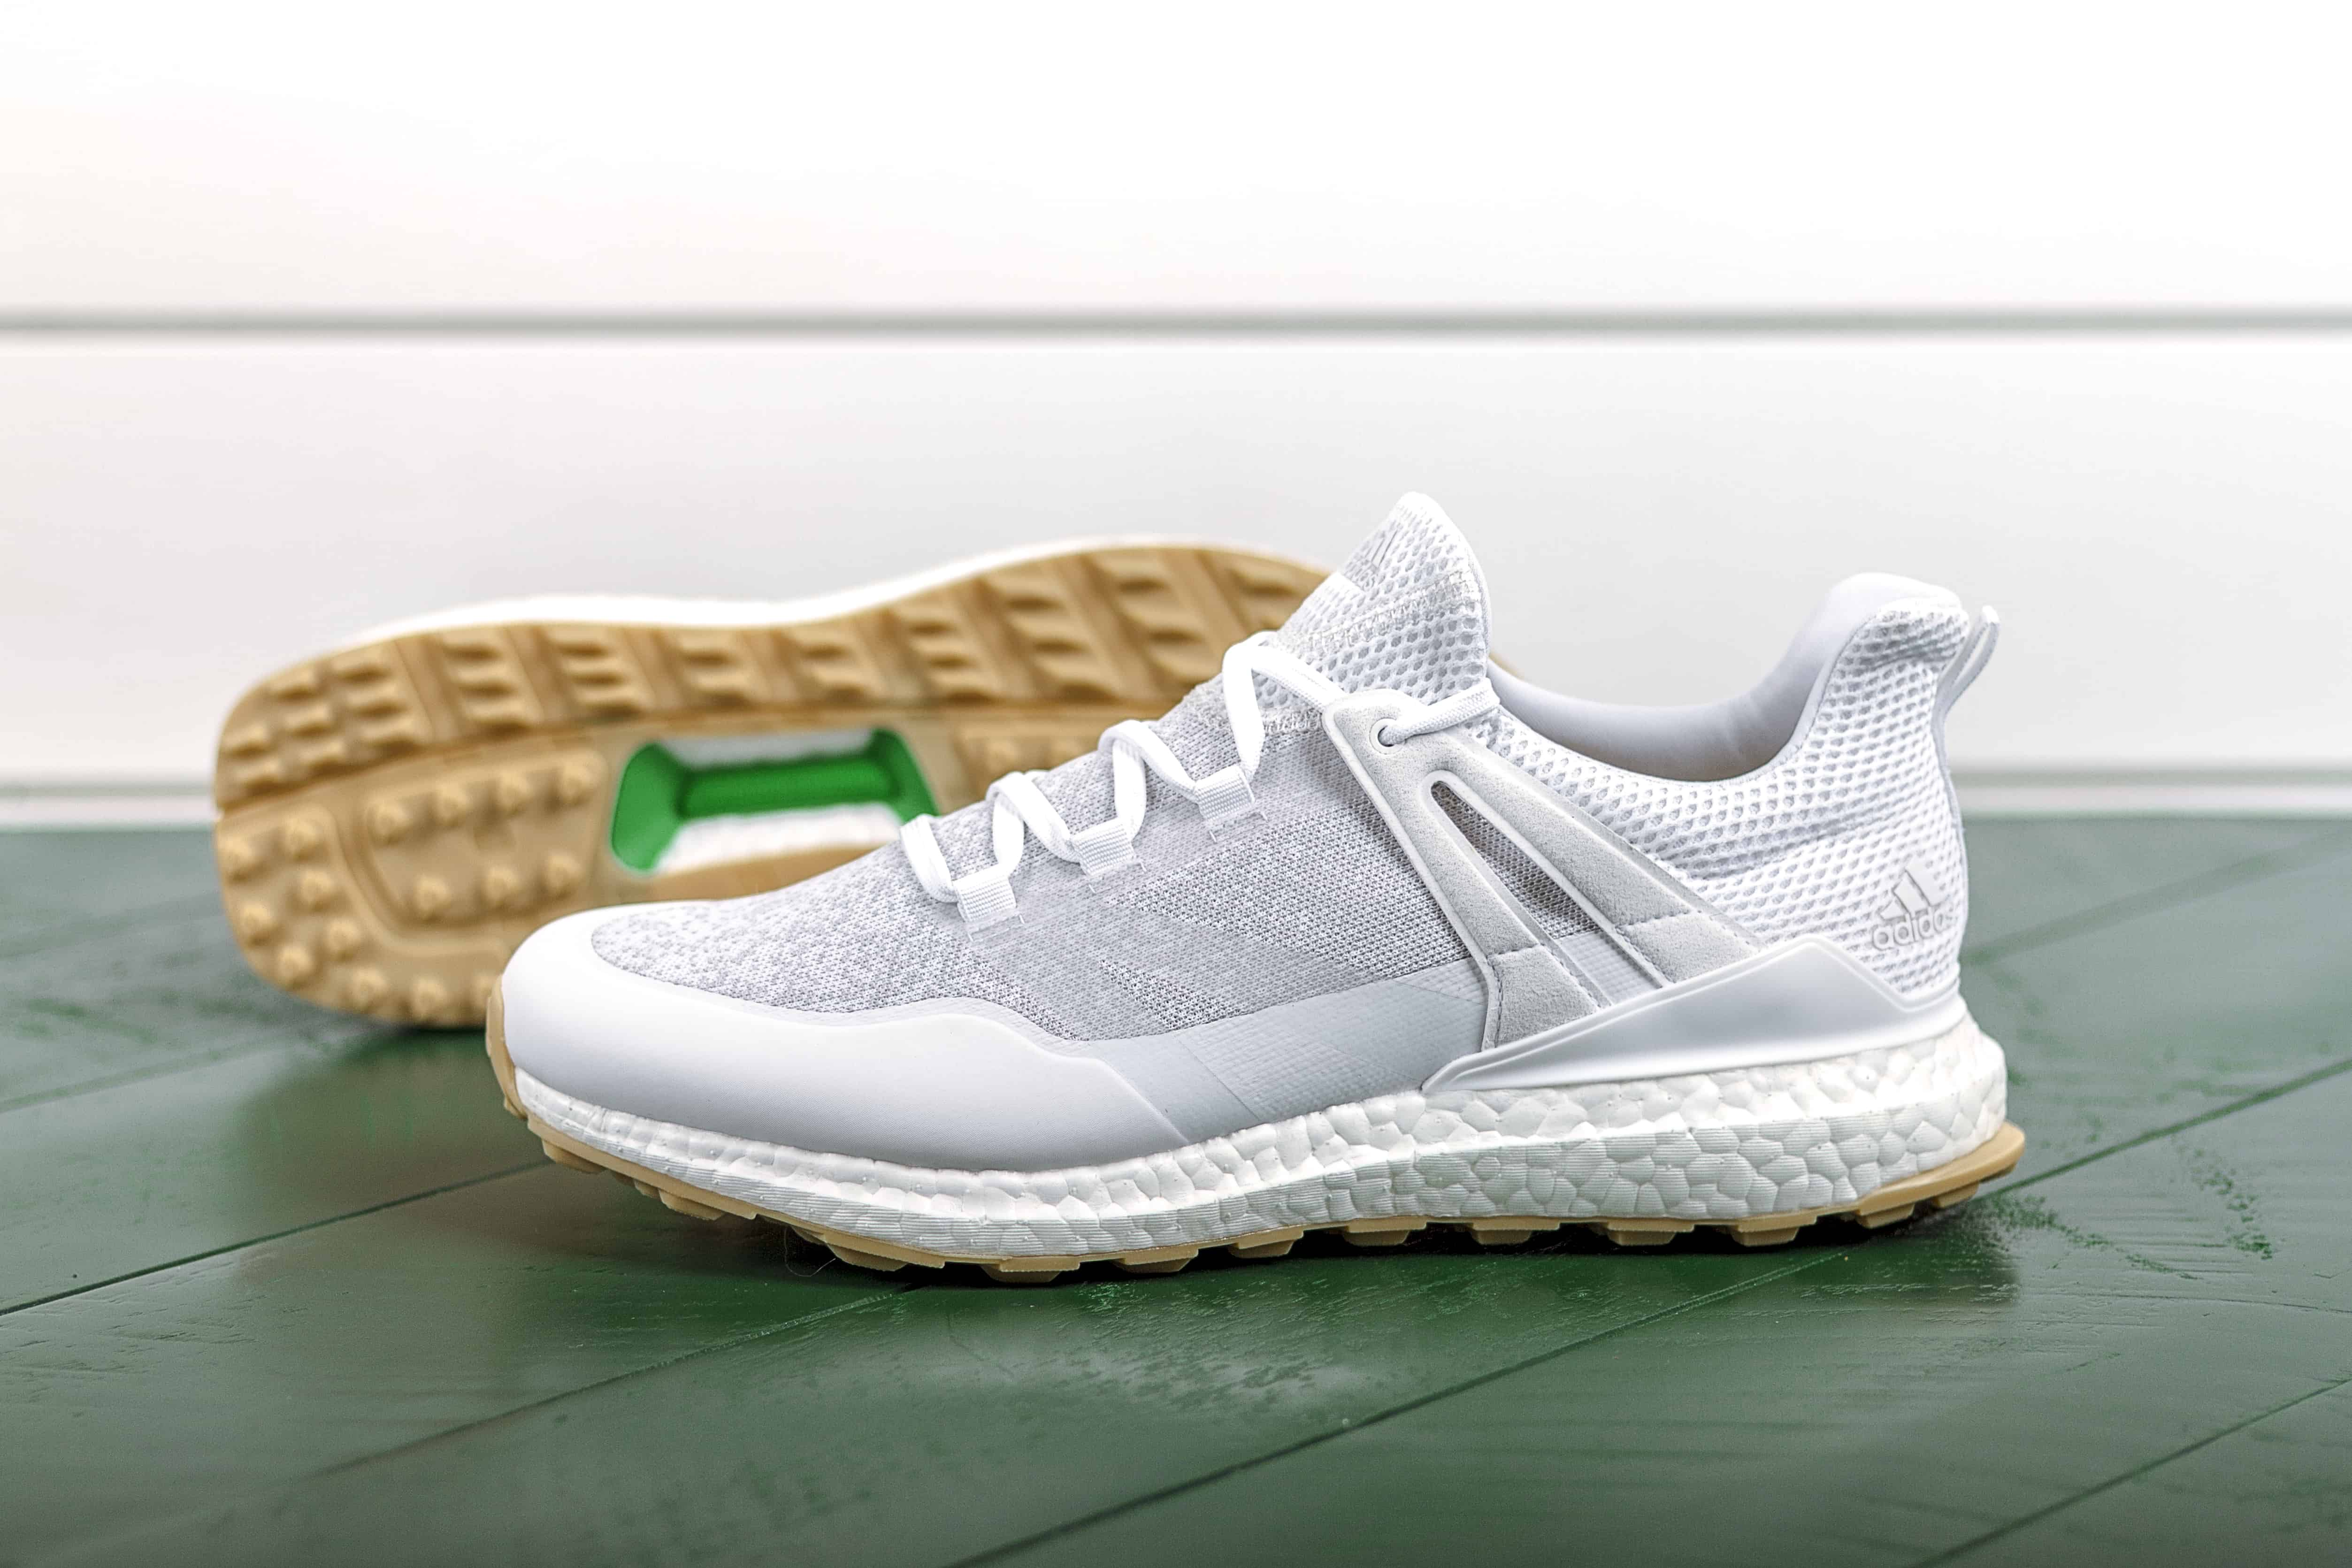 Adidas Golf Reveals Masters Inspired Crossknit Boost Golf Shoes The Daily Want